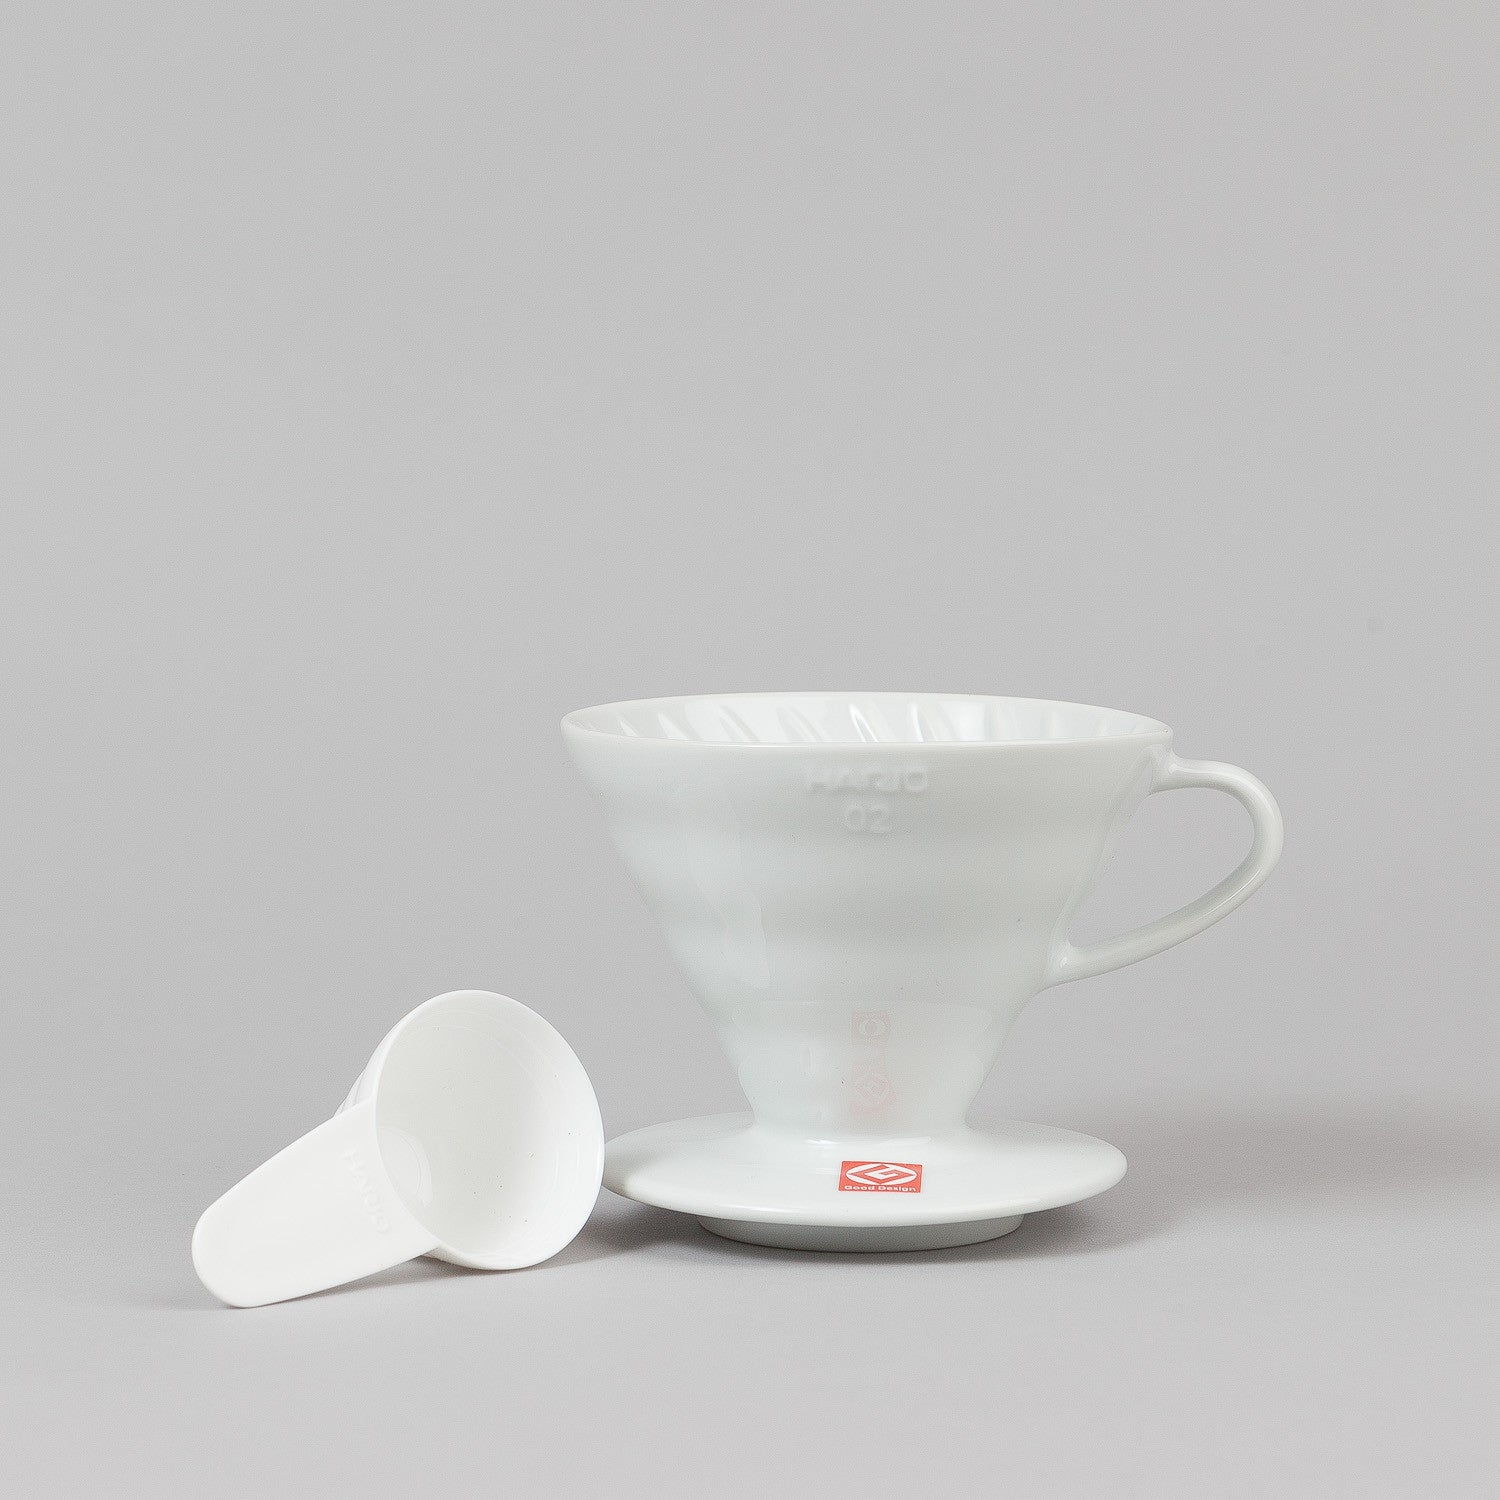 Hario V60 Ceramic Coffee Dripper - White